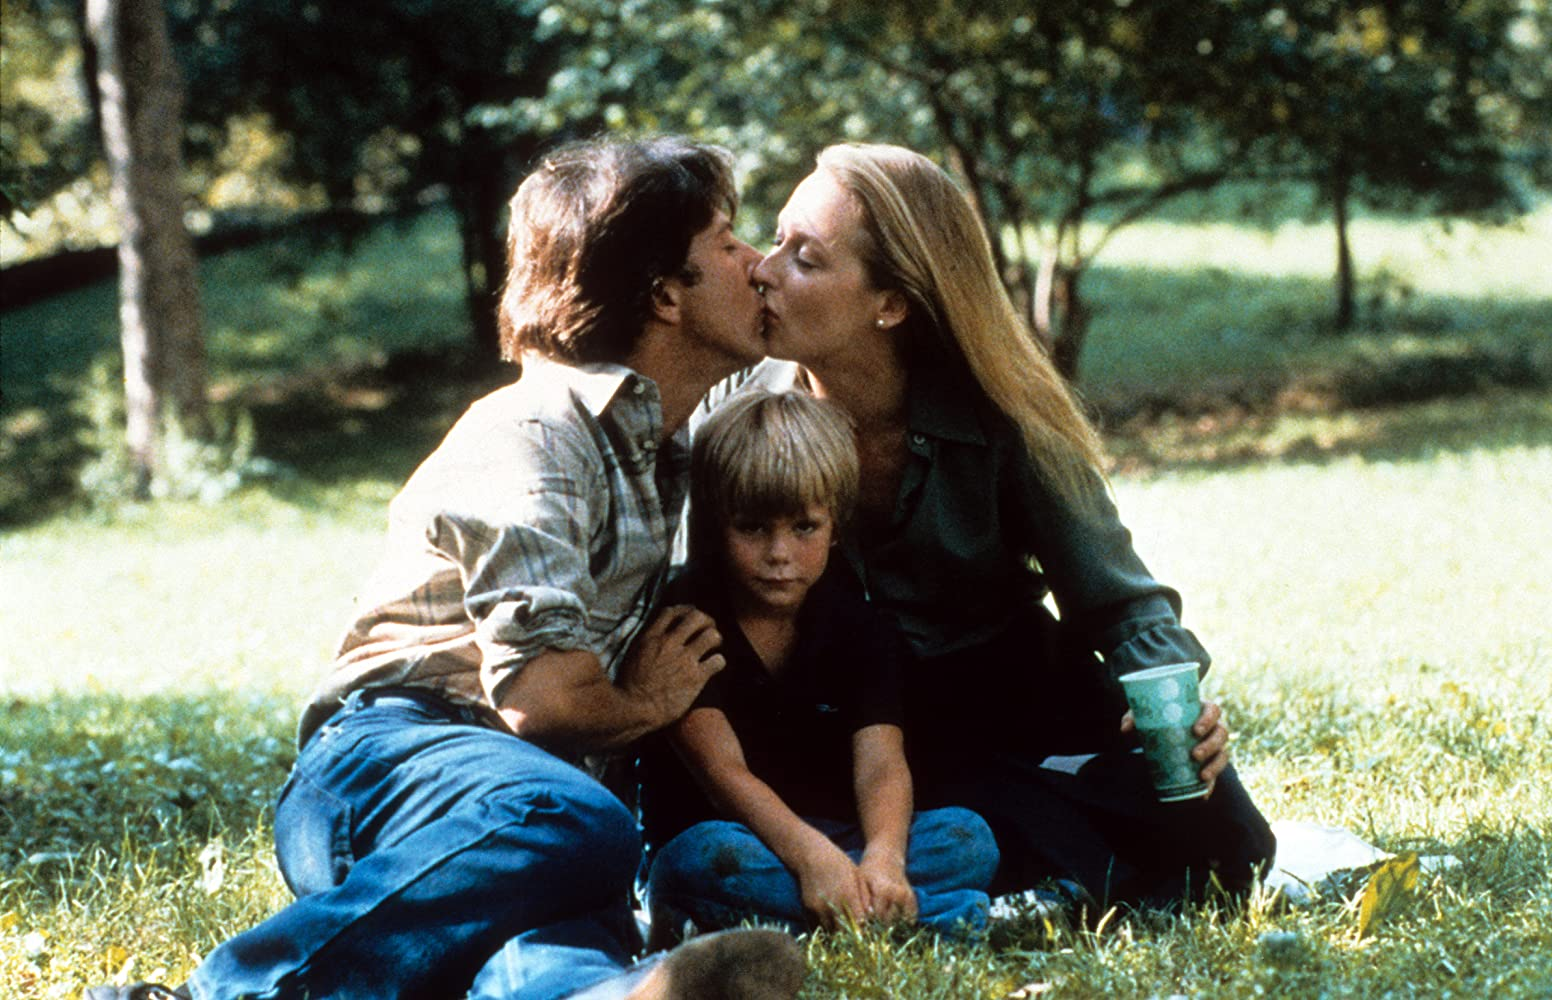 Dustin Hoffman, Meryl Streep, and Justin Henry in Kramer vs. Kramer (1979)